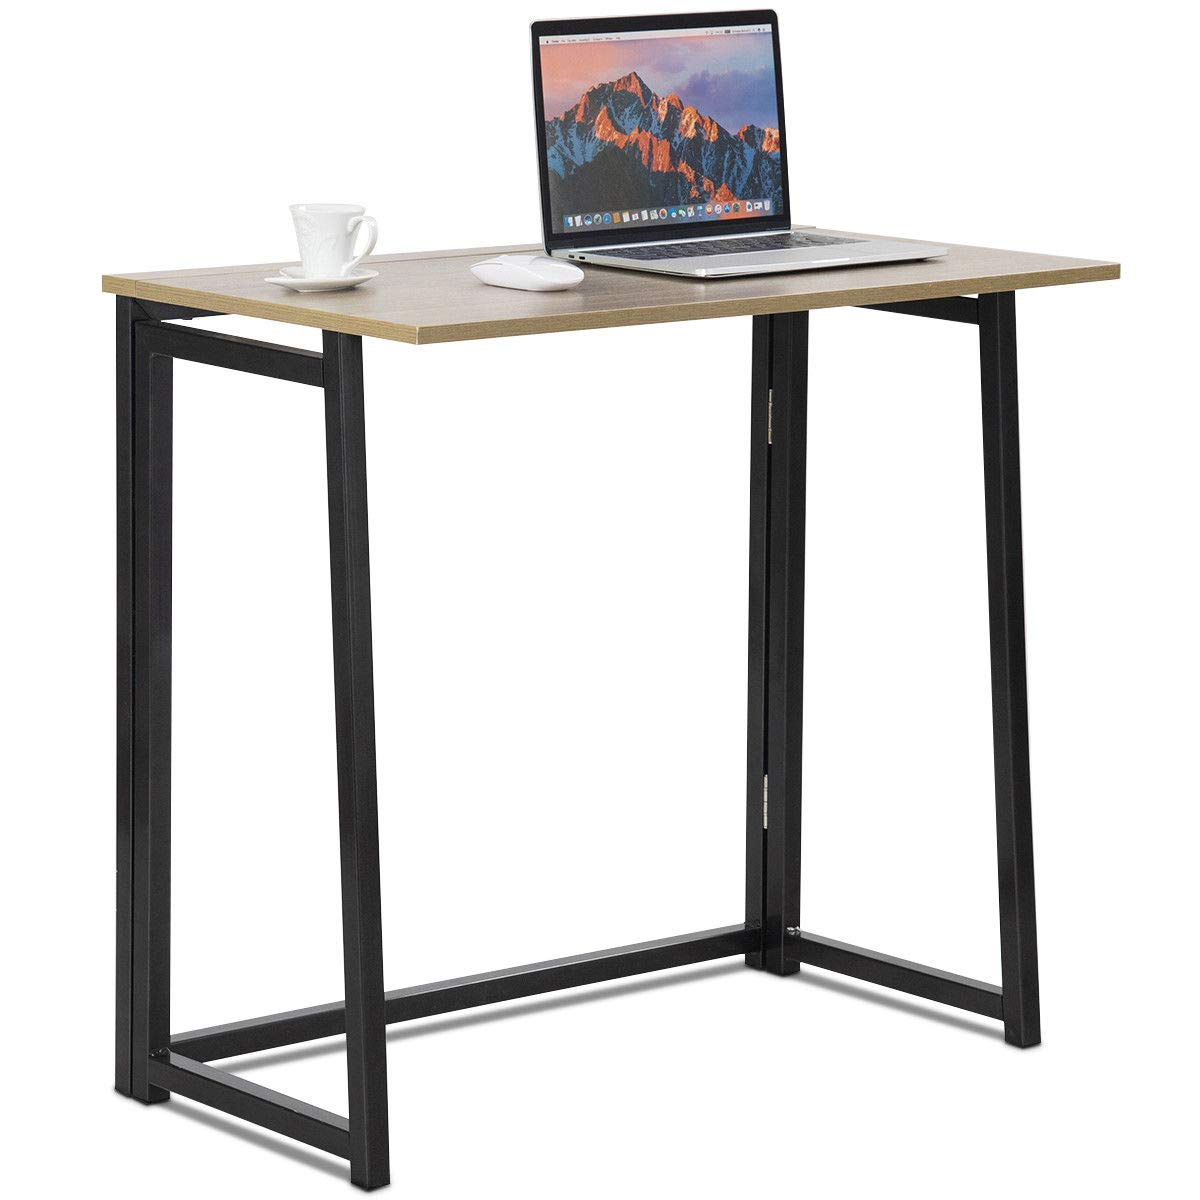 Tangkula Folding Table, Small Foldable Computer Desk, Home Office Laptop Table Writing Desk, Compact Study Reading Table for Small Space, Space Saving Office Table (Natural and Black)